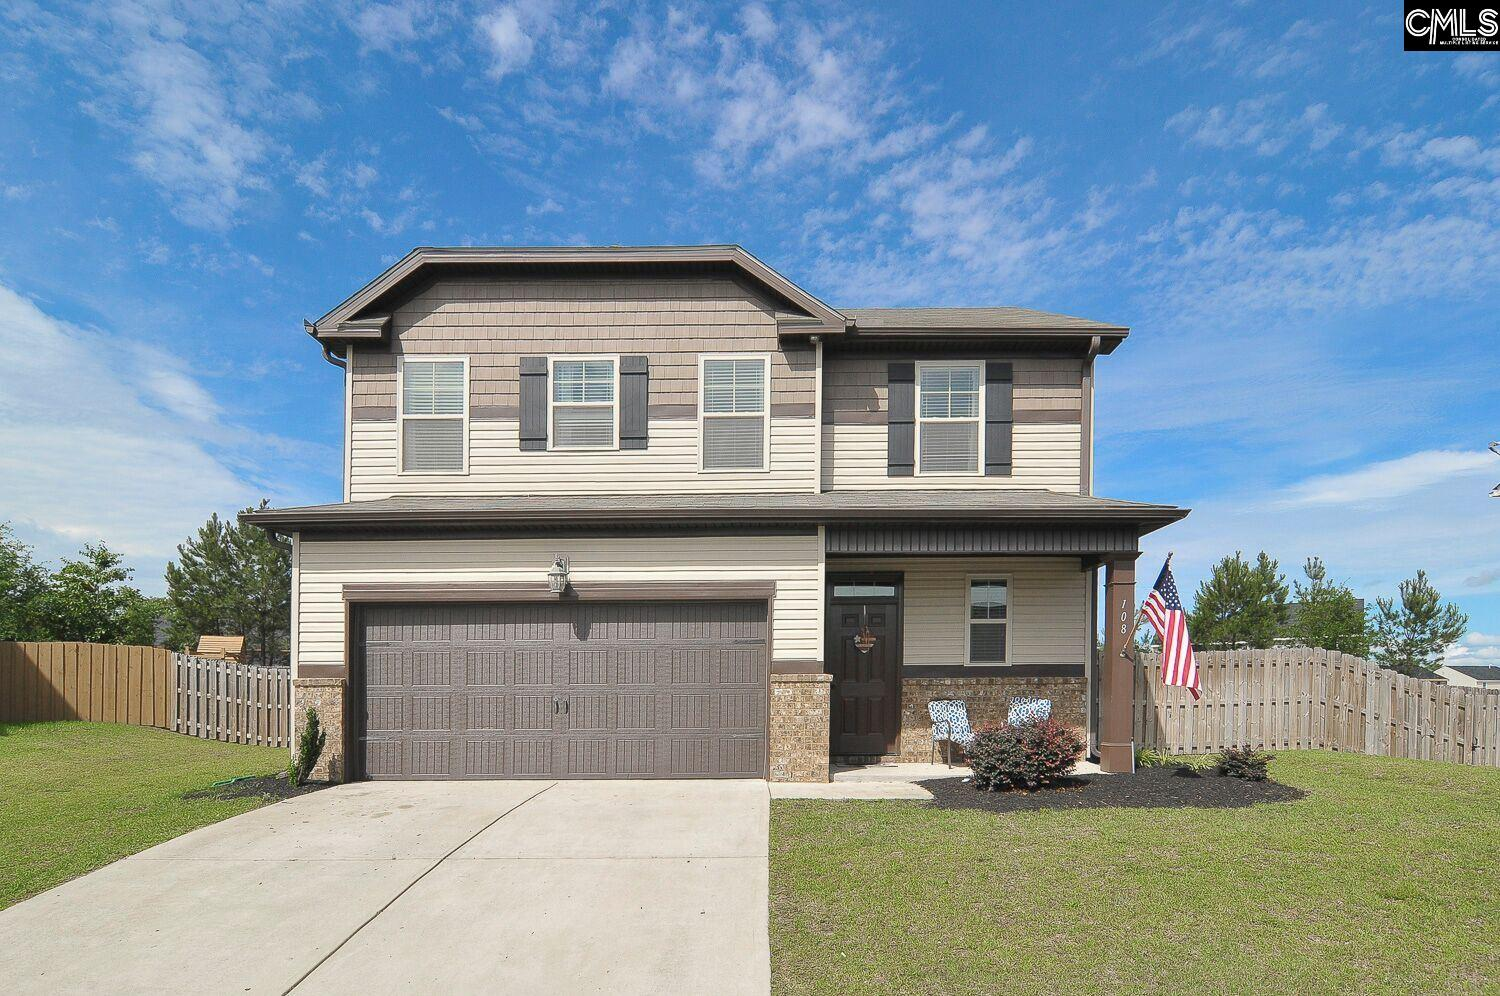 Immaculate 4 bedroom, 2.5 bath home located on a quiet cul de sac.  Covered patio and deck that overlooks a huge, fenced backyard.  Kitchen has crown molding, granite counter tops, tile back splash, stainless appliances, and custom shelving in pantry.  Great room has gas fireplace and large windows. Spacious laundry room on main level has built-in shelving. Large master bedroom with tray ceiling and on suite Master bath with double vanity, granite counter tops, separate shower and garden tub. Home has sprinklers and full gutters. Close to I20, restaurants and shopping. Award winning Lexington One schools. Like new in condition.  Built by Wilson Parker Homes in 2014.